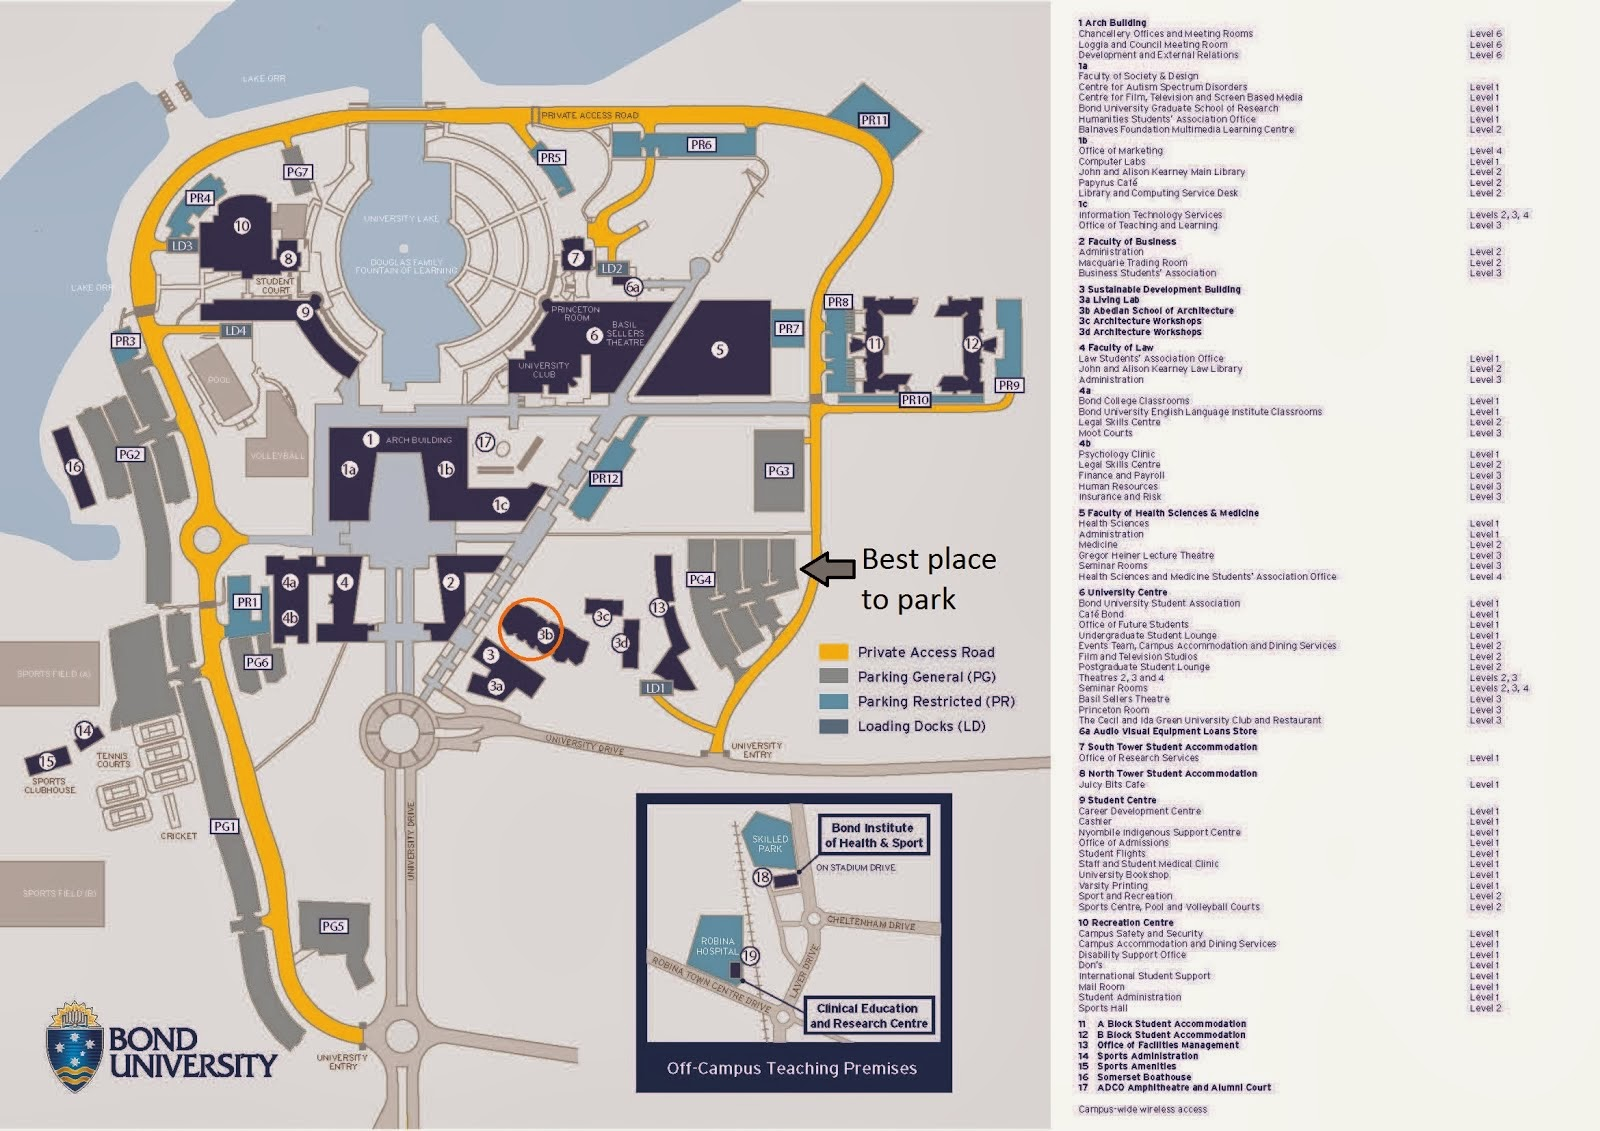 myfriendstoldmeaboutyou - Guide bond university college map->